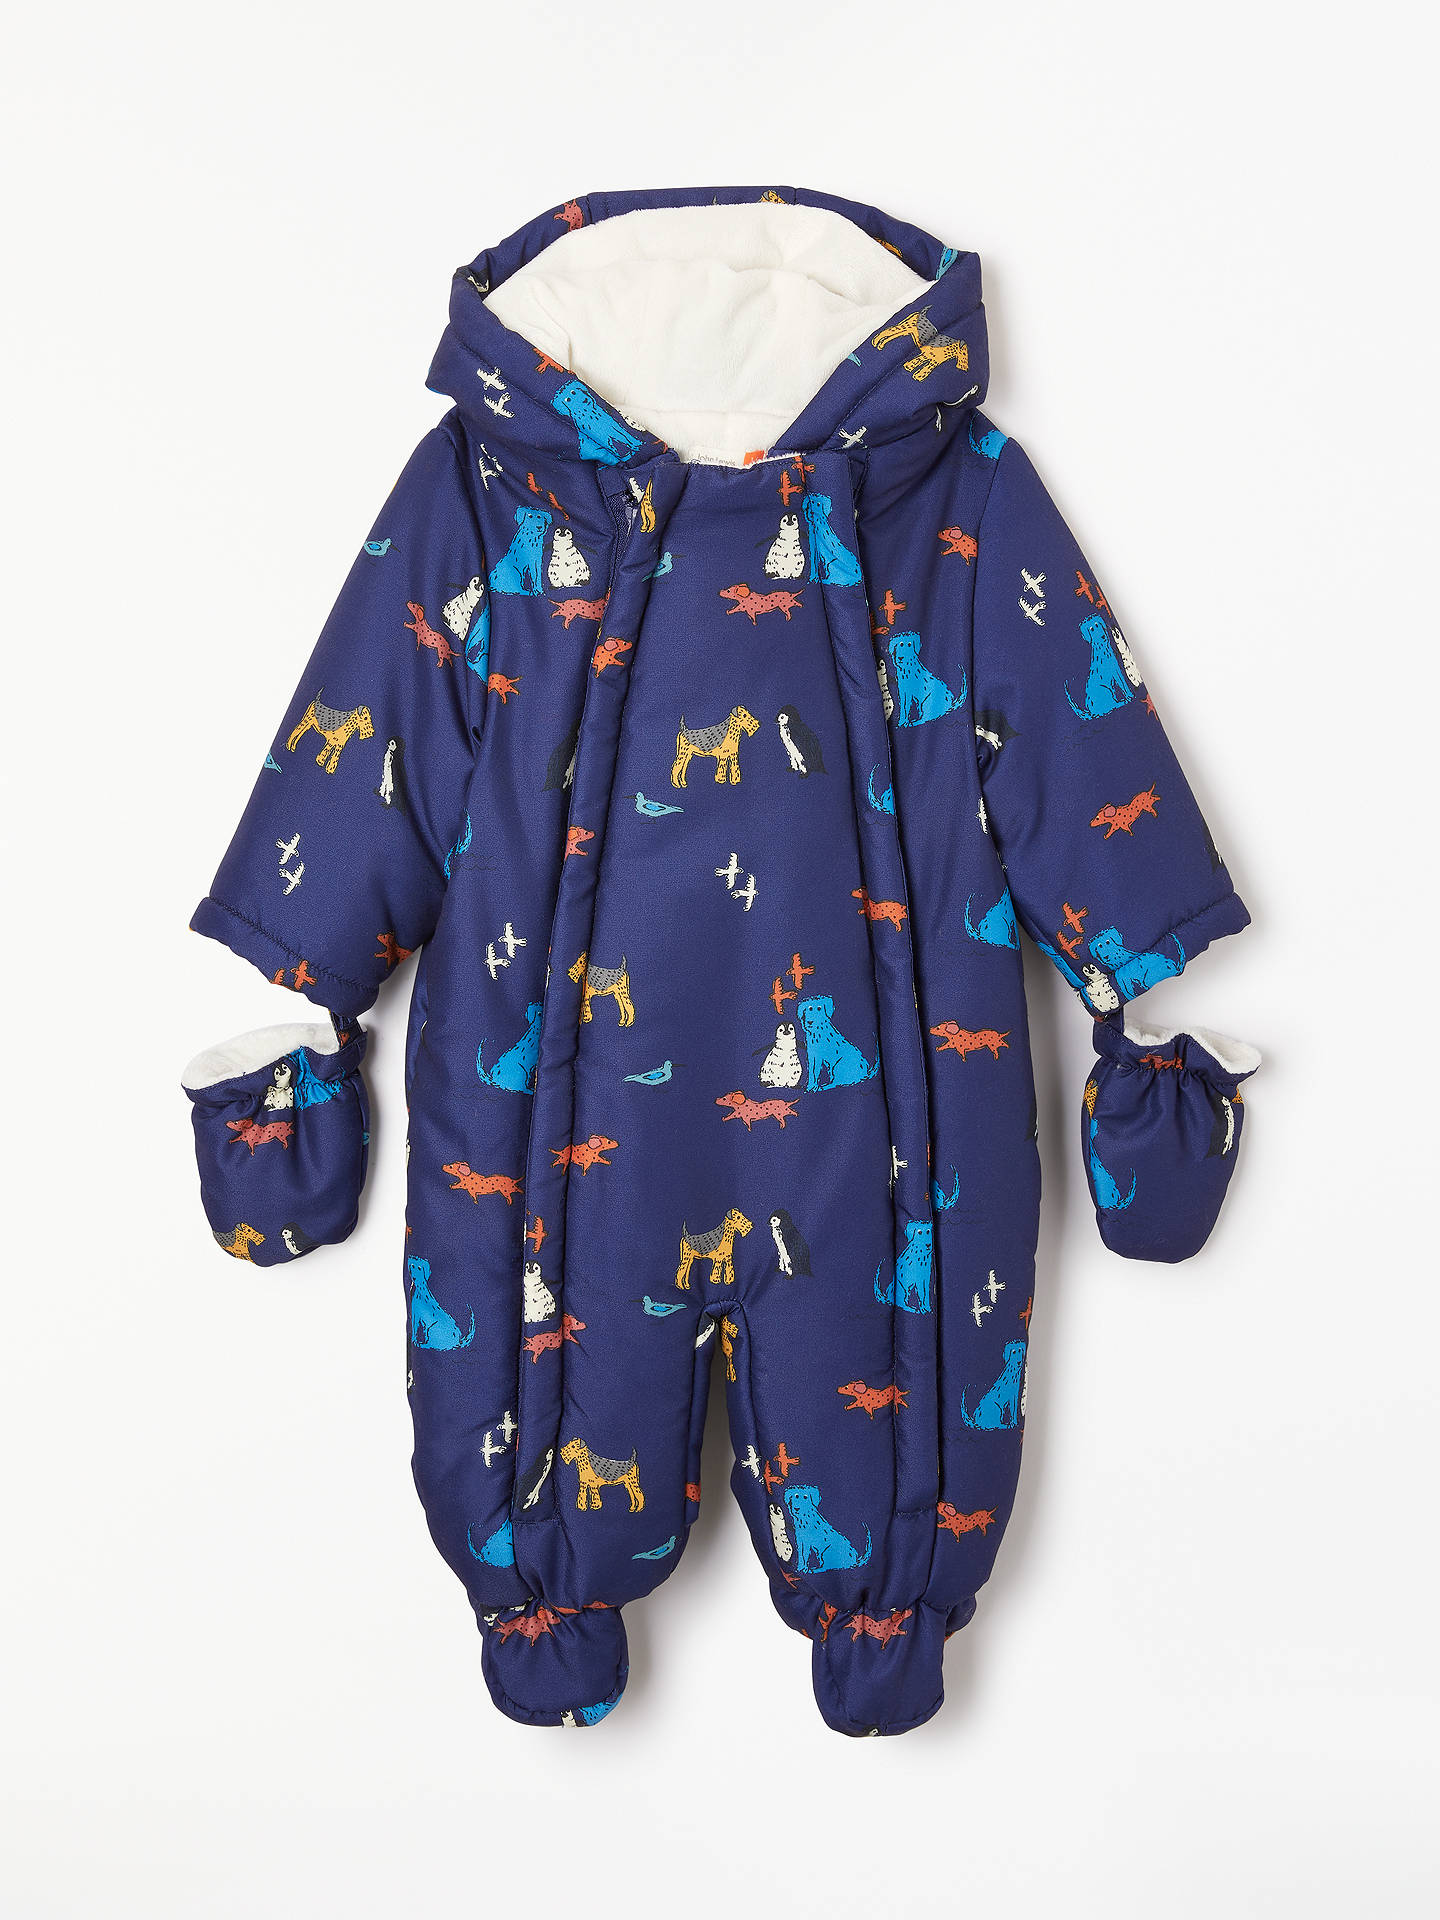 81579e6a9f09 John Lewis   Partners Baby Isle Of Dogs Snowsuit